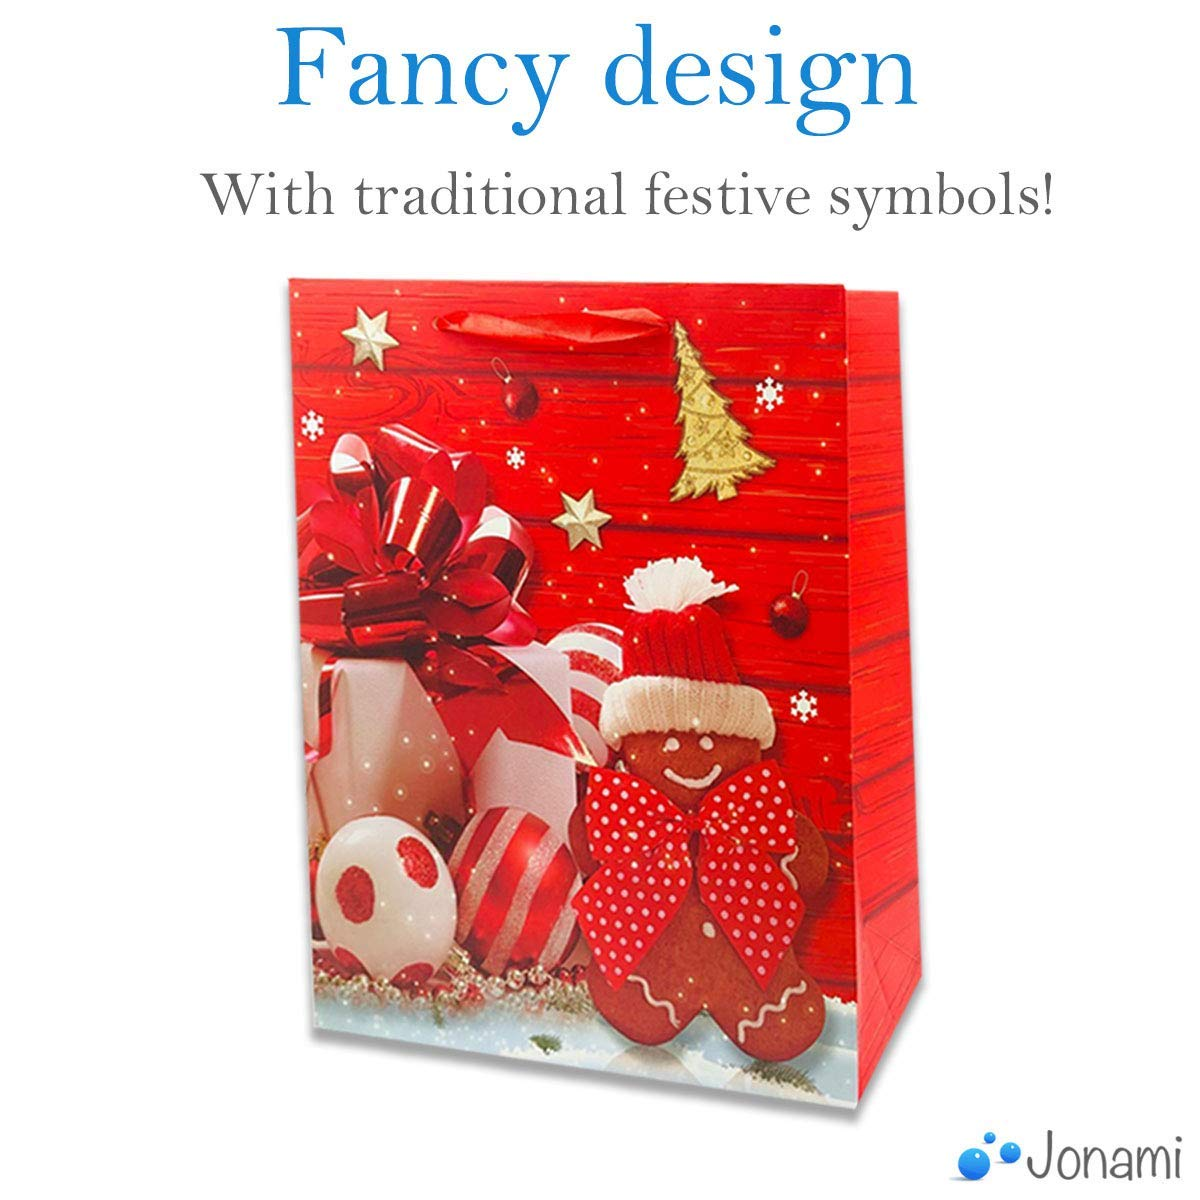 Gift Wrap and Party Favours Gift Bags Christmas Stocking Stuffers 12 Pack 24x18x8cm Gift Bags with 4 Winter Design for Christmas Presents